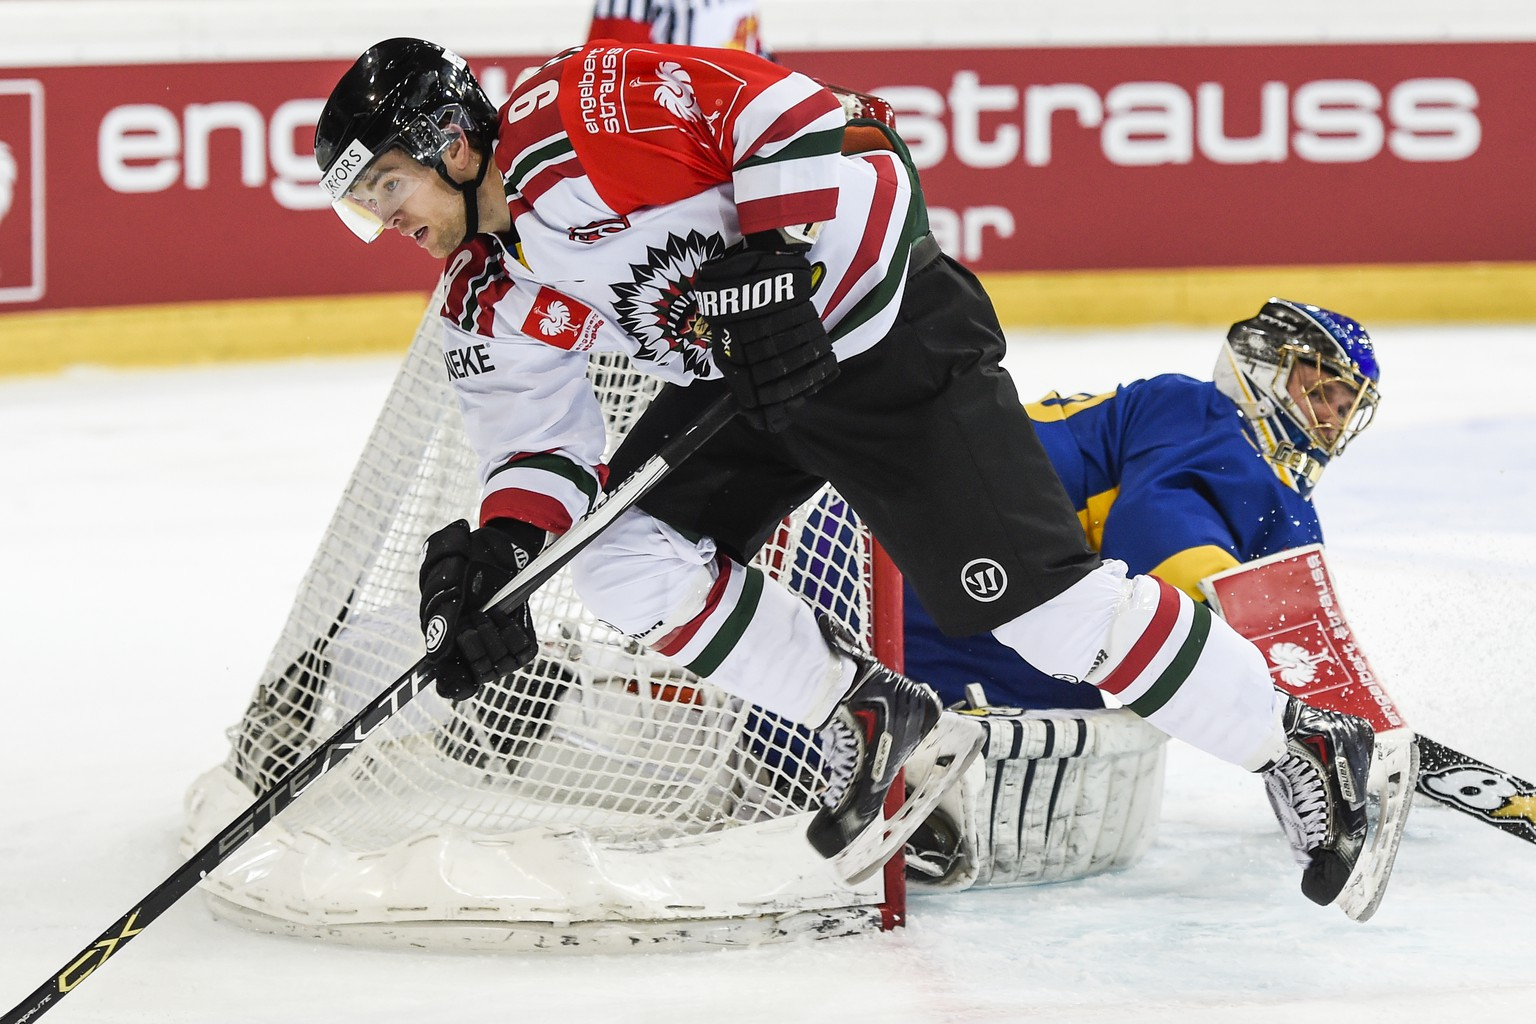 Goalkeeper Leonardo Genoni of Davos, right, fights for the puck with Spencer Abbott of Goeteborg, during the Champions Hockey League semi-finals ice hockey match between HC Davos and Froelunda Goeteborg, at the Vaillant Arena in Davos, Switzerland, Tuesday, January 12, 2016. (KEYSTONE/Gian Ehrenzeller)